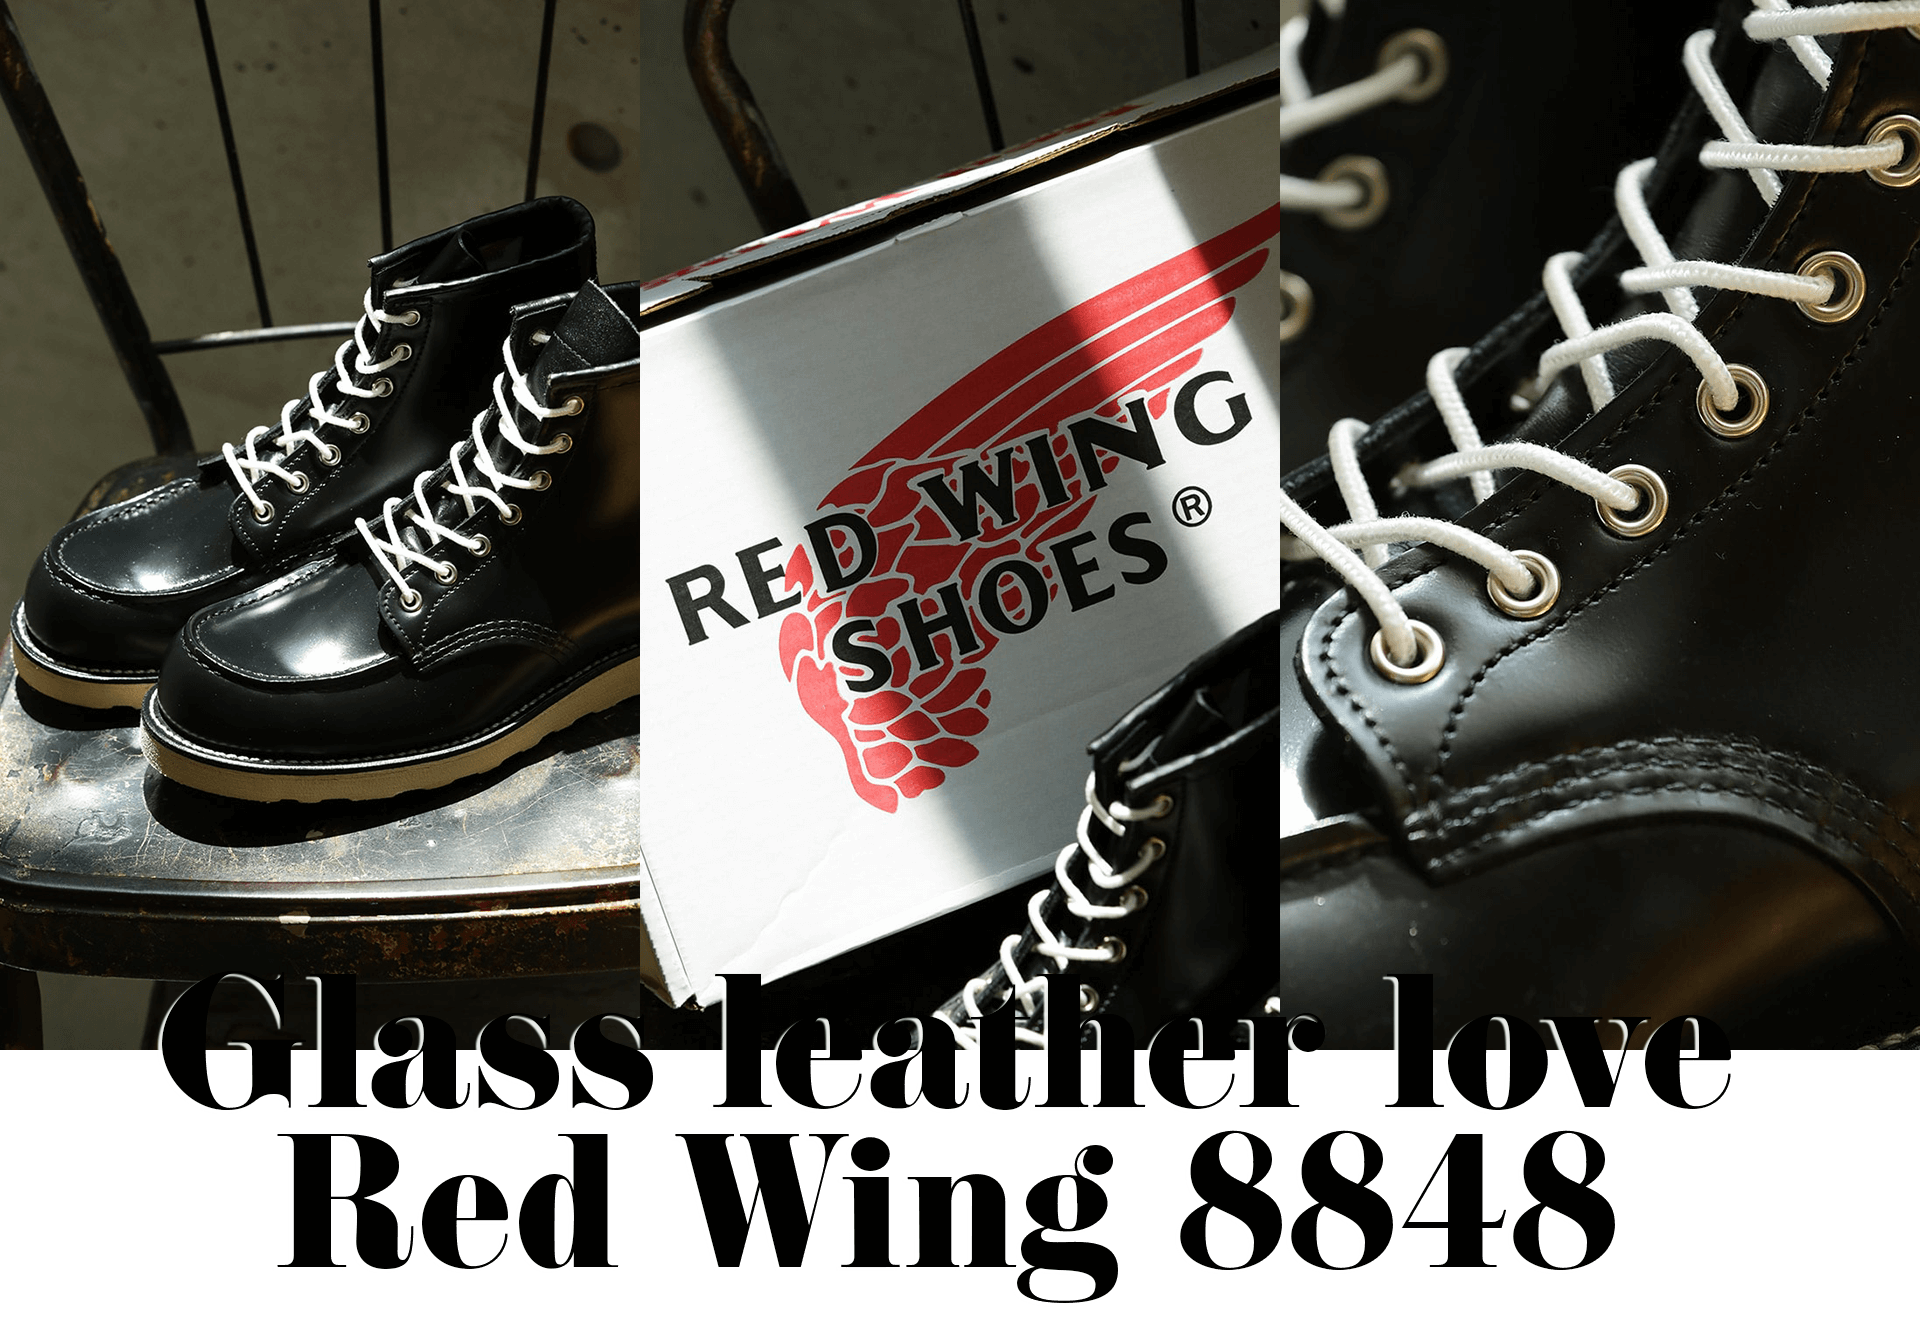 Glass leather love Red Wing 8848